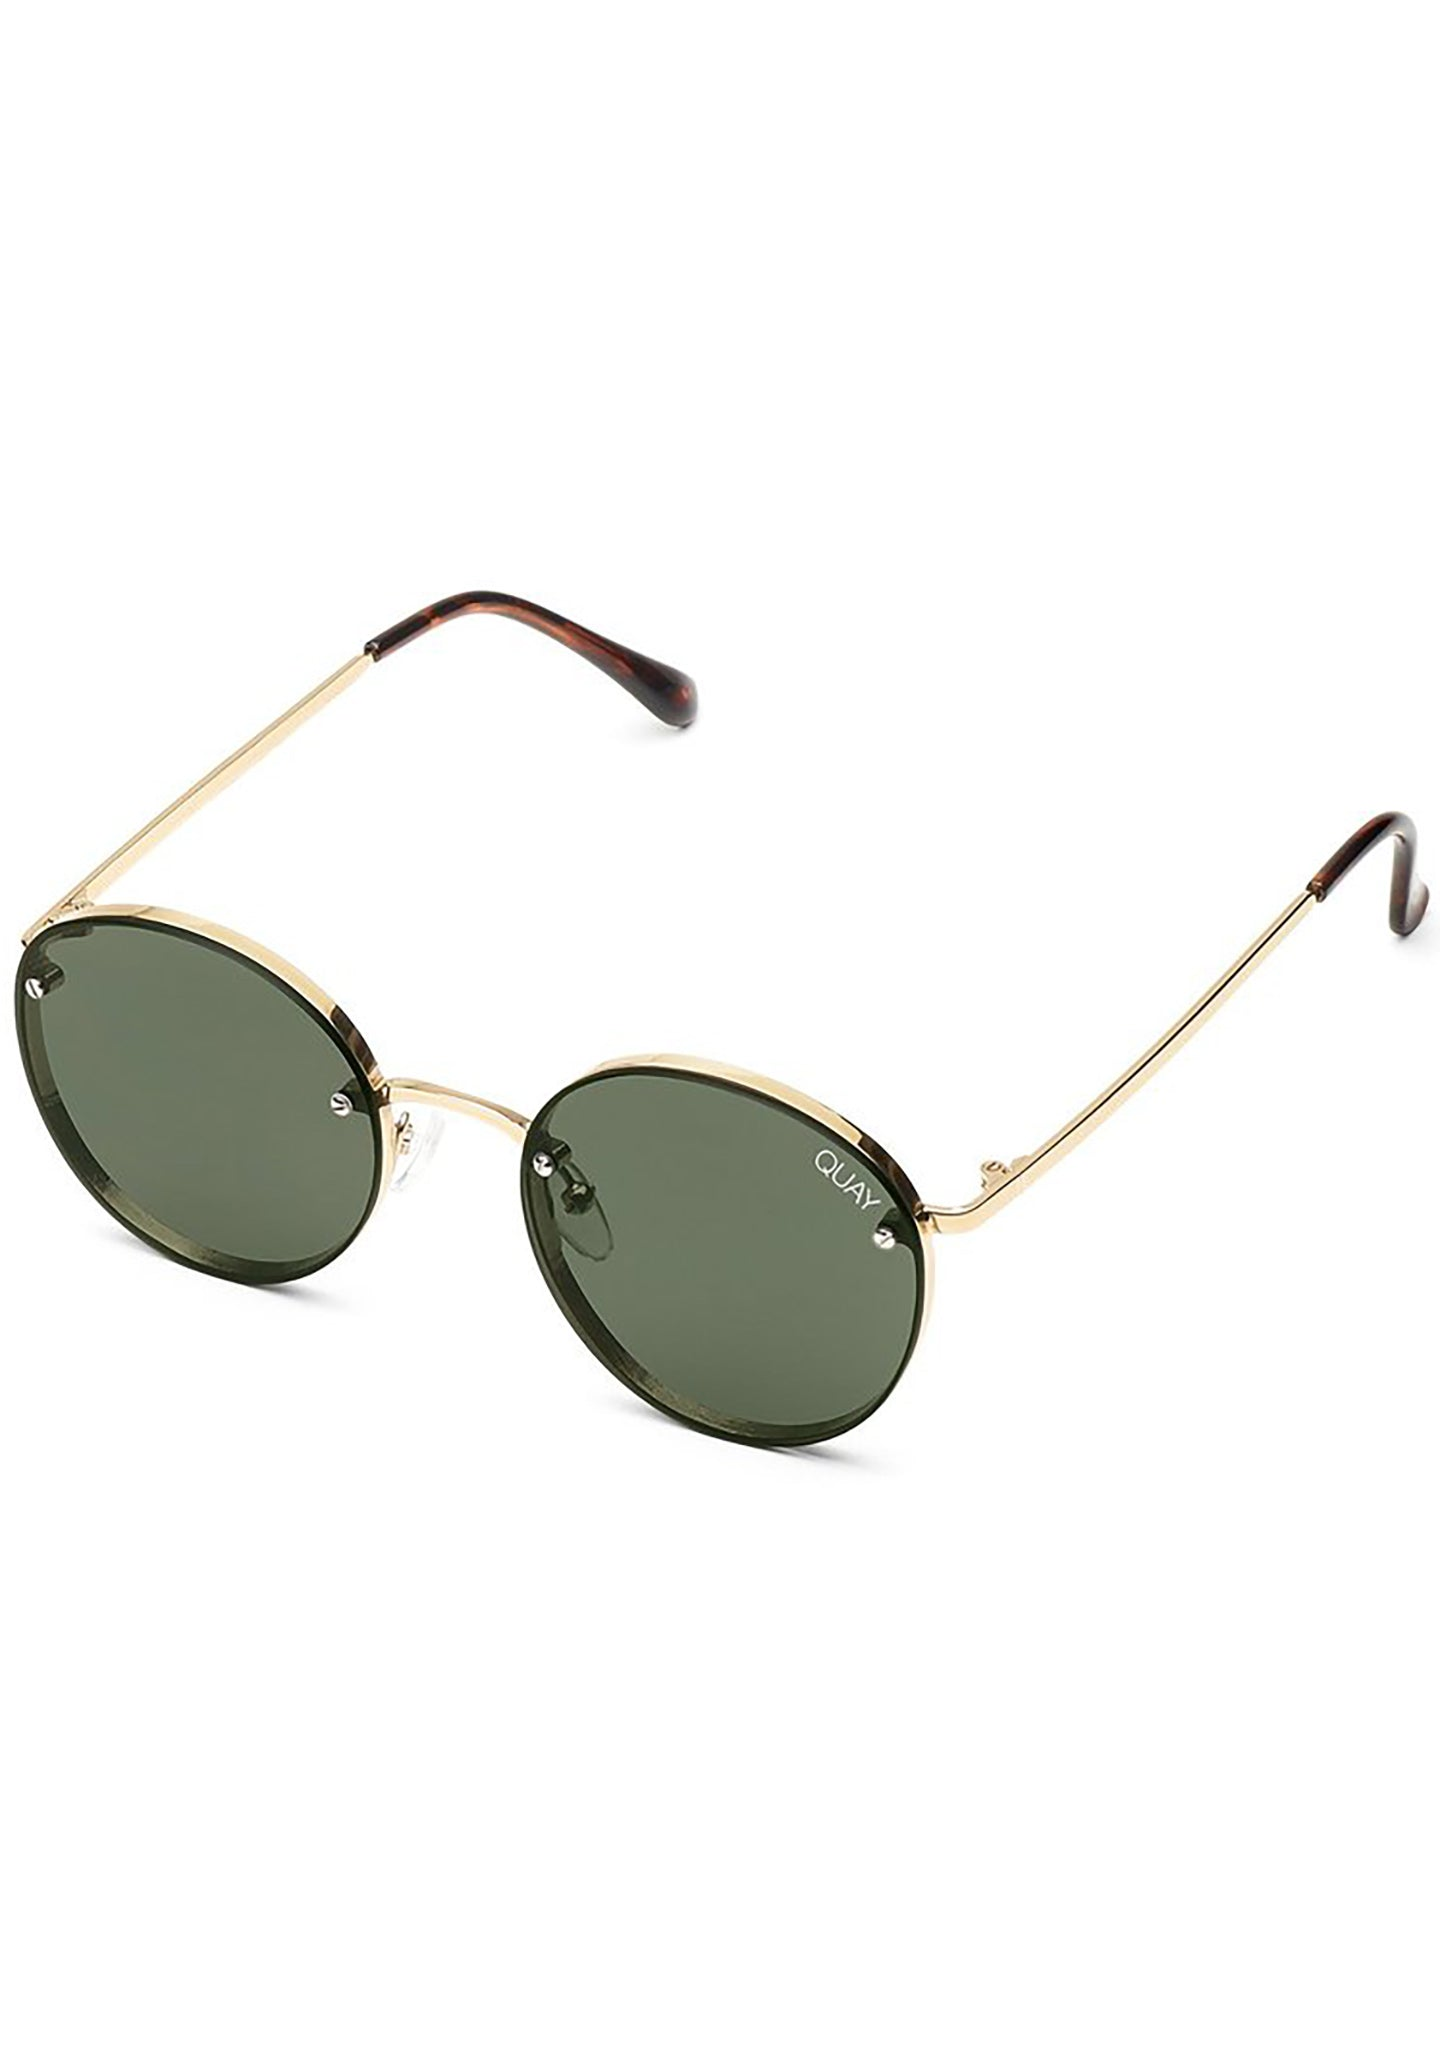 X Elle Ferguson Farrah Sunglasses in Gold/Green